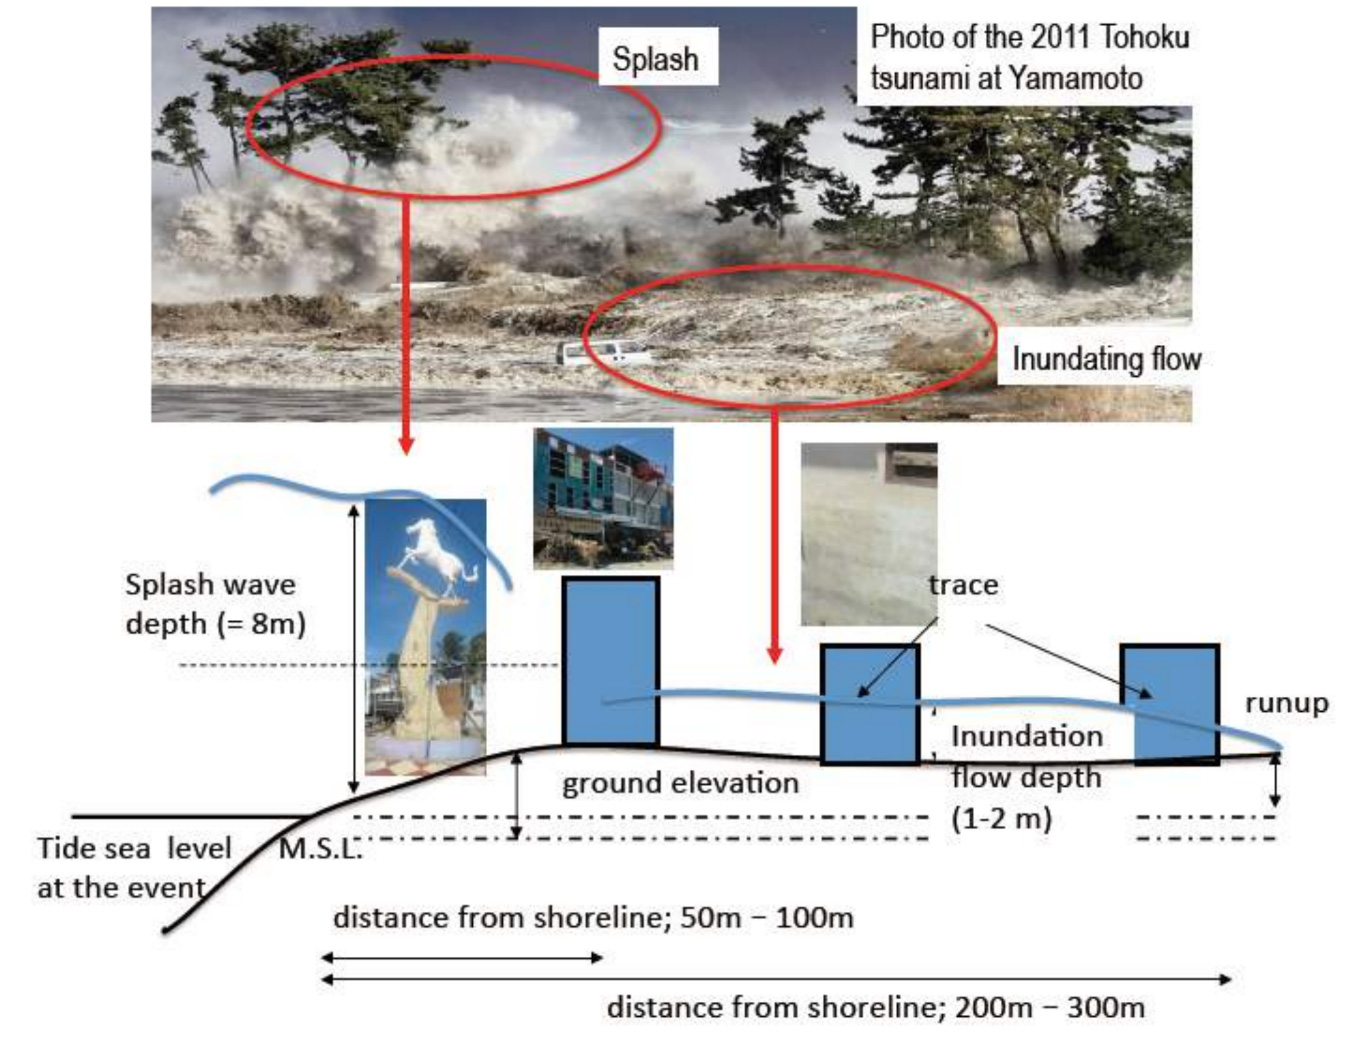 Figure 2 Cross section of the tsunami and topography at the Palu with splash wave/inundation flow depth (Muhari et al, 2018 JDR submitted)